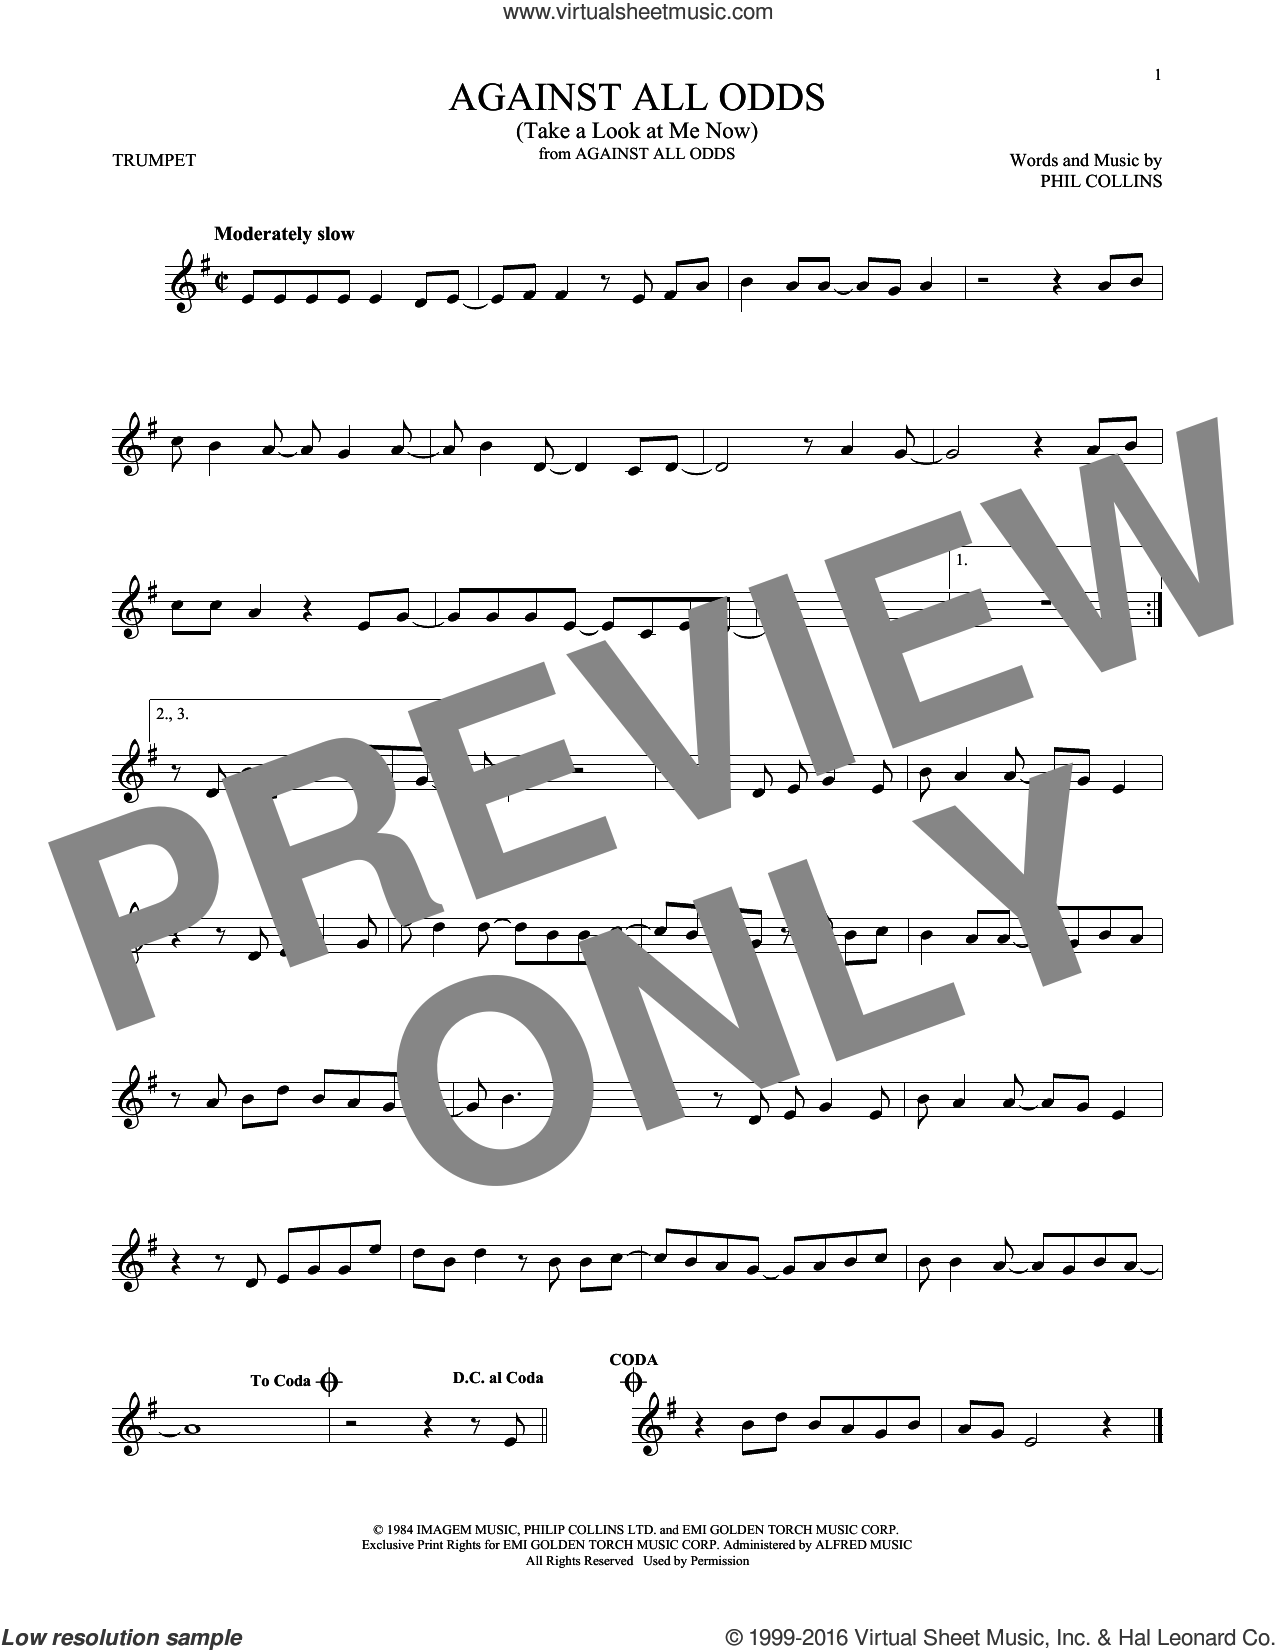 Against All Odds (Take A Look At Me Now) sheet music for trumpet solo by Phil Collins, intermediate skill level